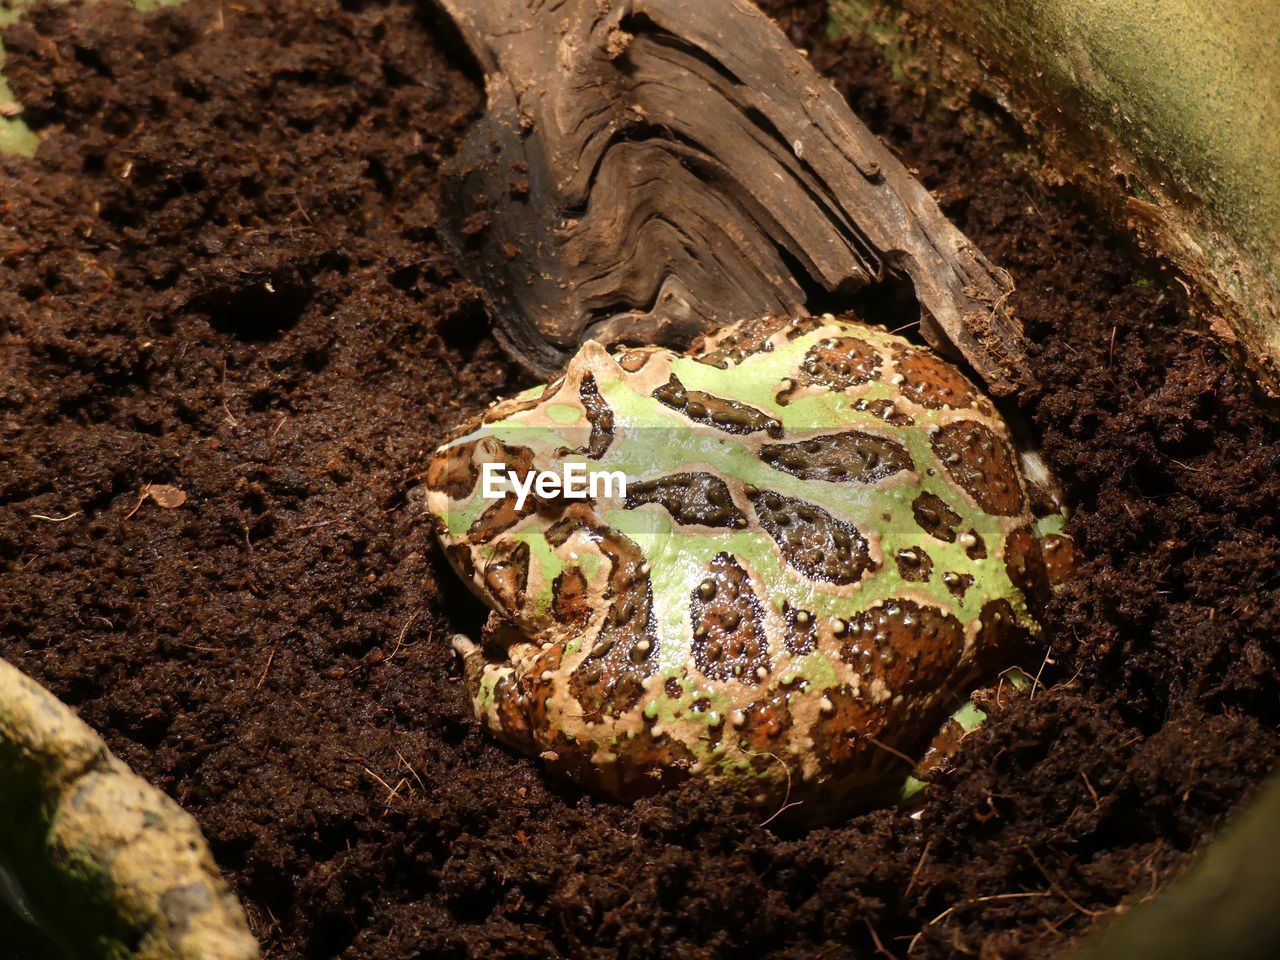 close-up, no people, day, nature, plant, dirt, land, field, high angle view, growth, selective focus, sunlight, leaf, outdoors, plant part, animal themes, brown, tree, animal wildlife, animal, mud